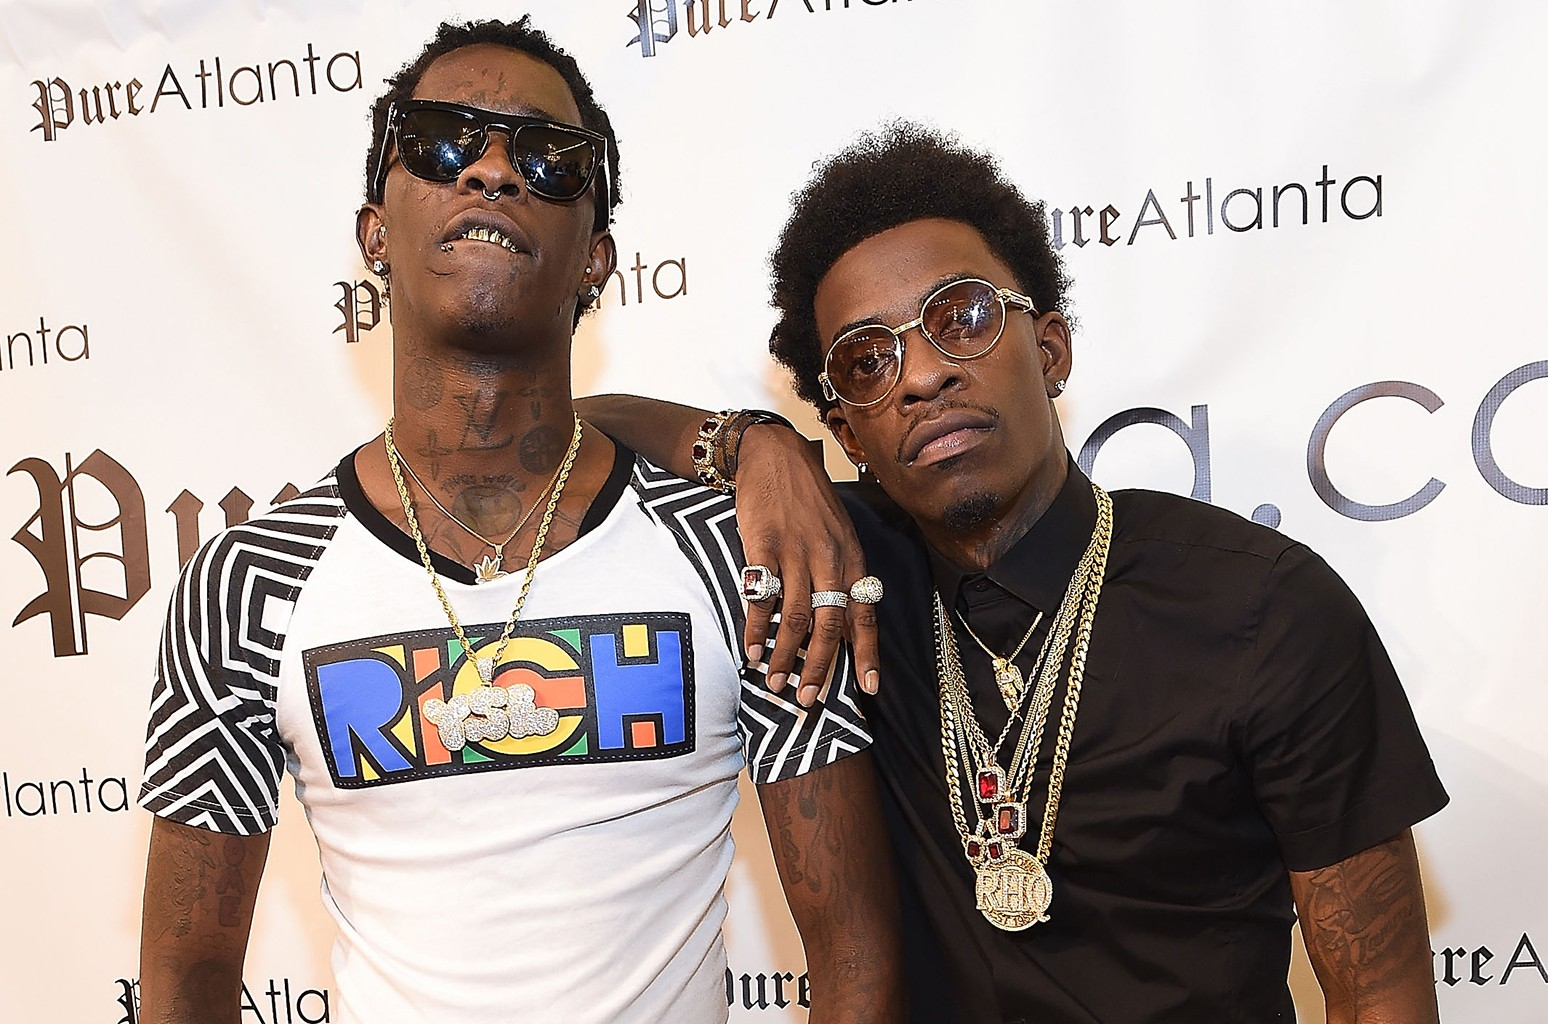 Young Thug and Rich Homie Quan attend the Rich Homie Quan By 8732 Collection Launch at Pure Atlanta at Lenox Square on Aug. 26, 2014 in Atlanta.